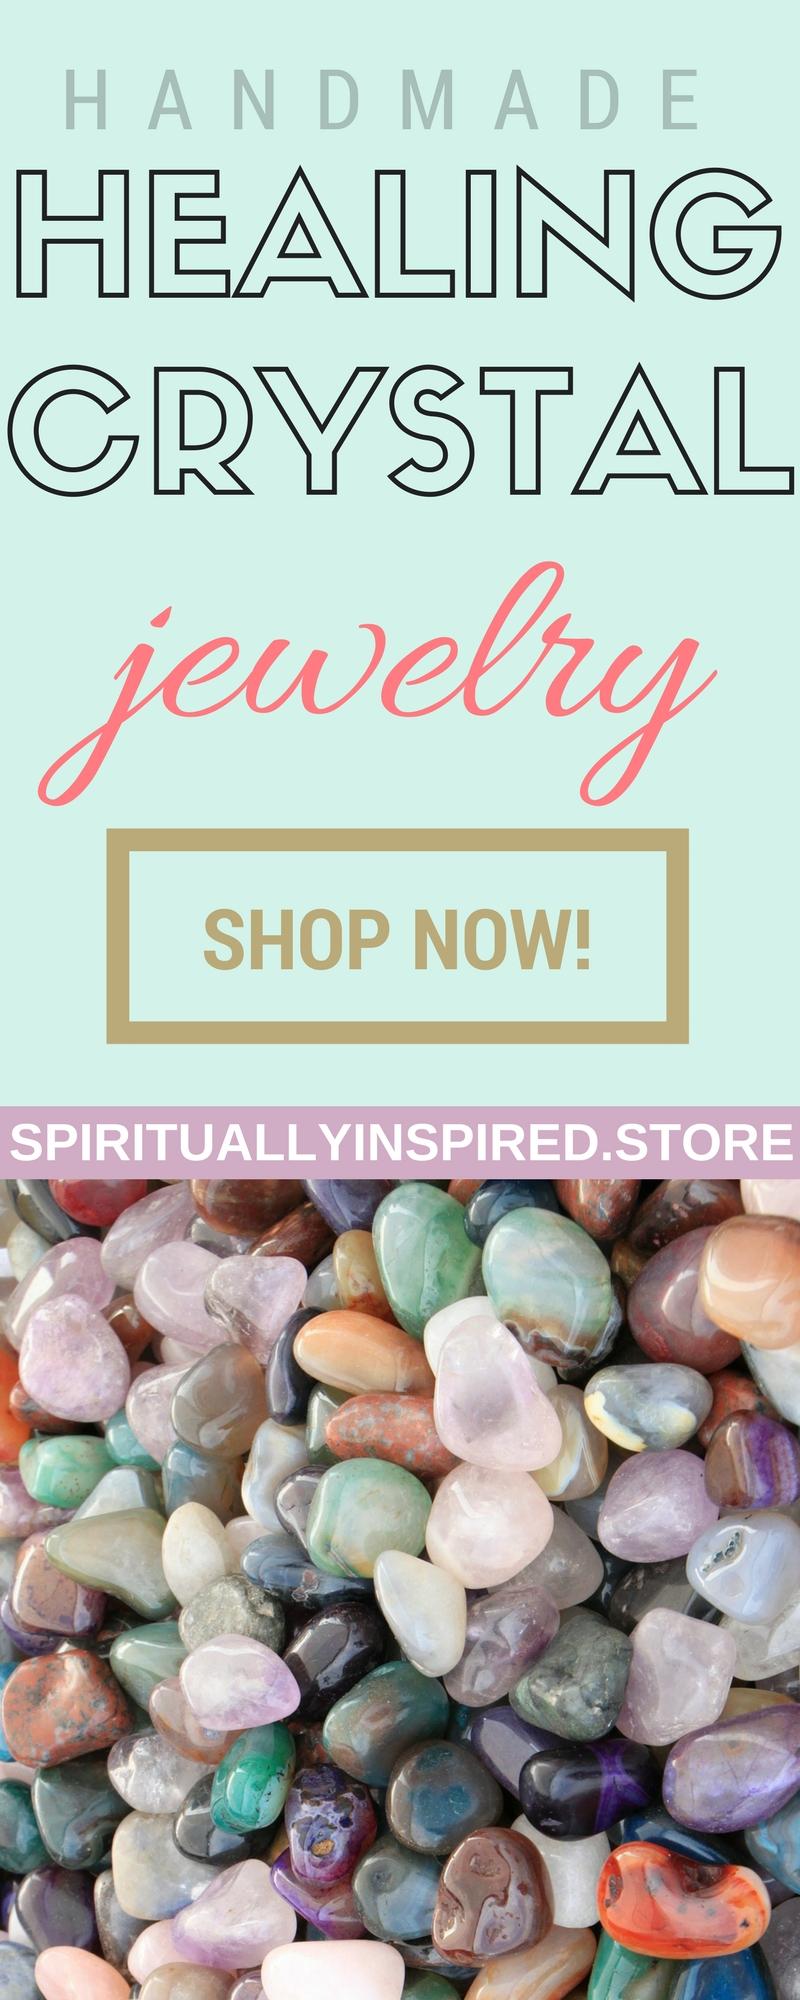 Healing crystal jewelry handmade with love and light! Necklaces, pendants, bracelets, earrings, rings, and more. Support an artisan--choose to shop small!